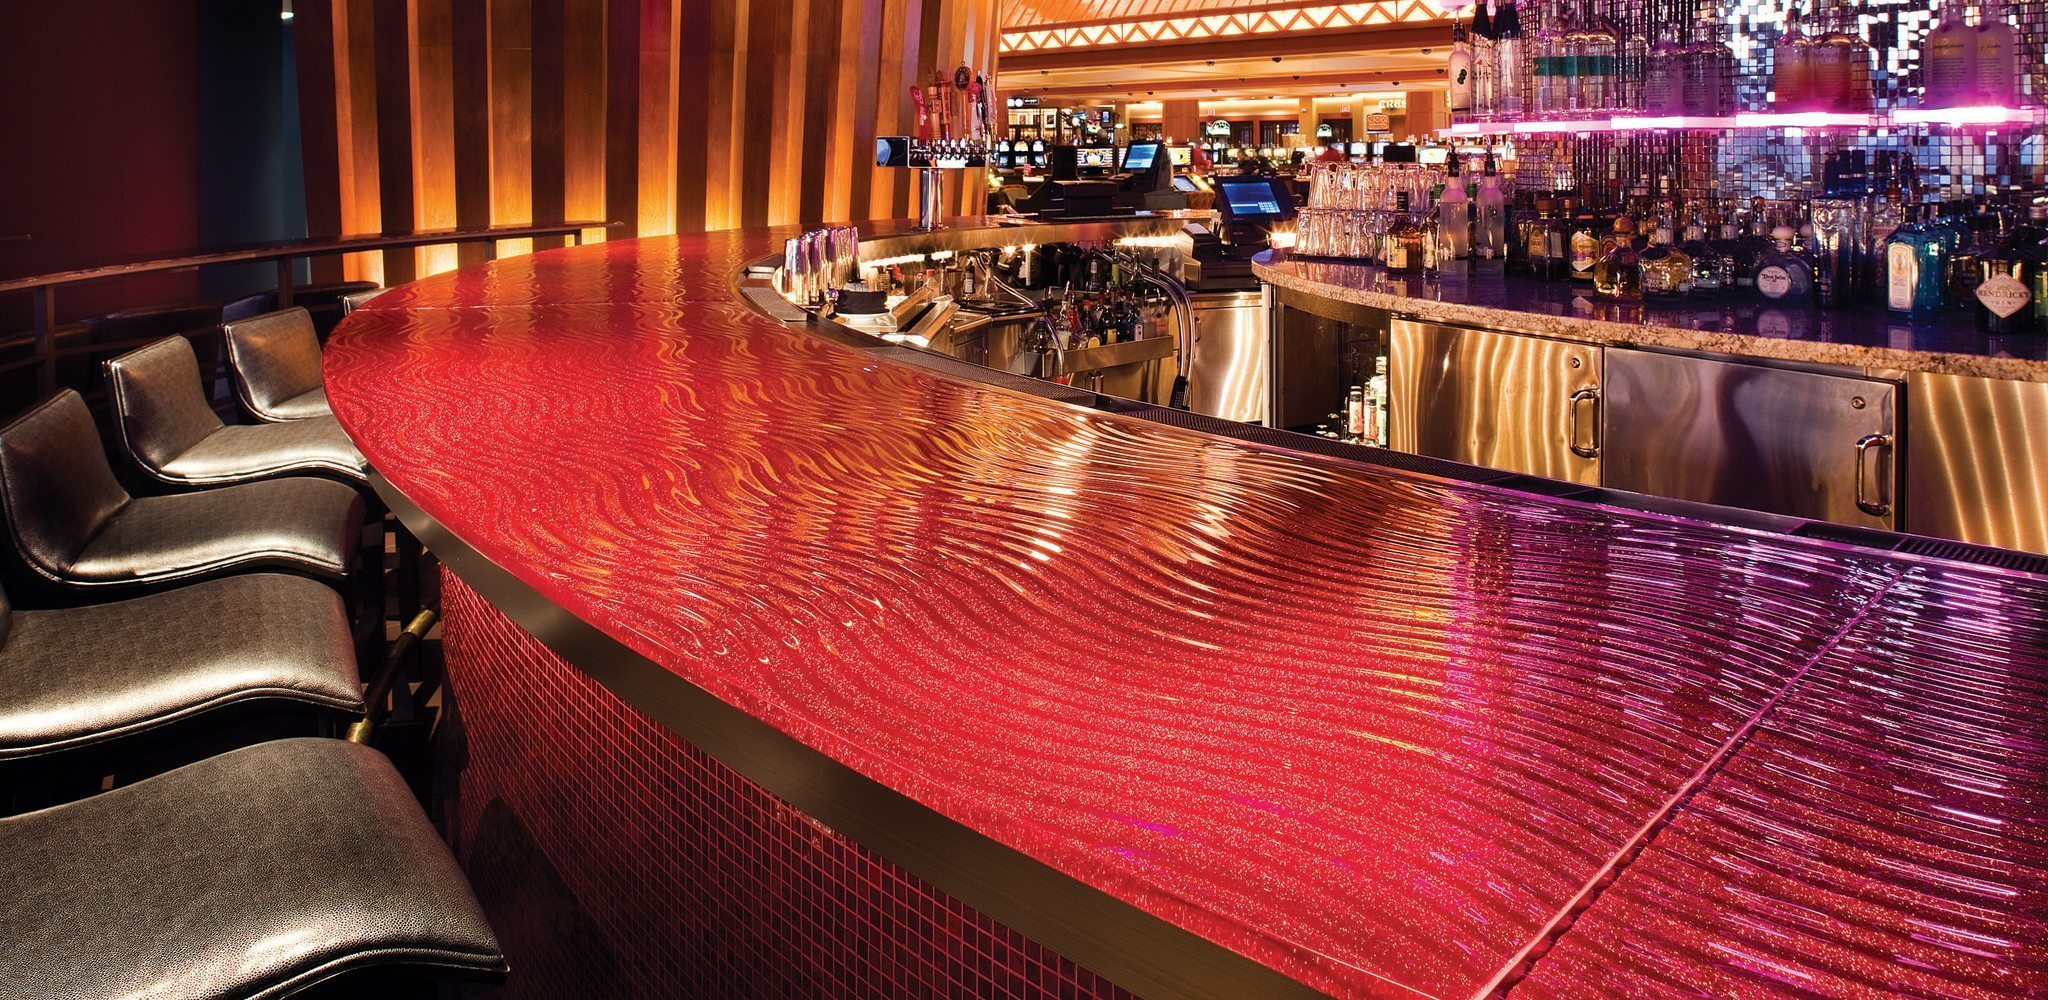 Craps odds payouts